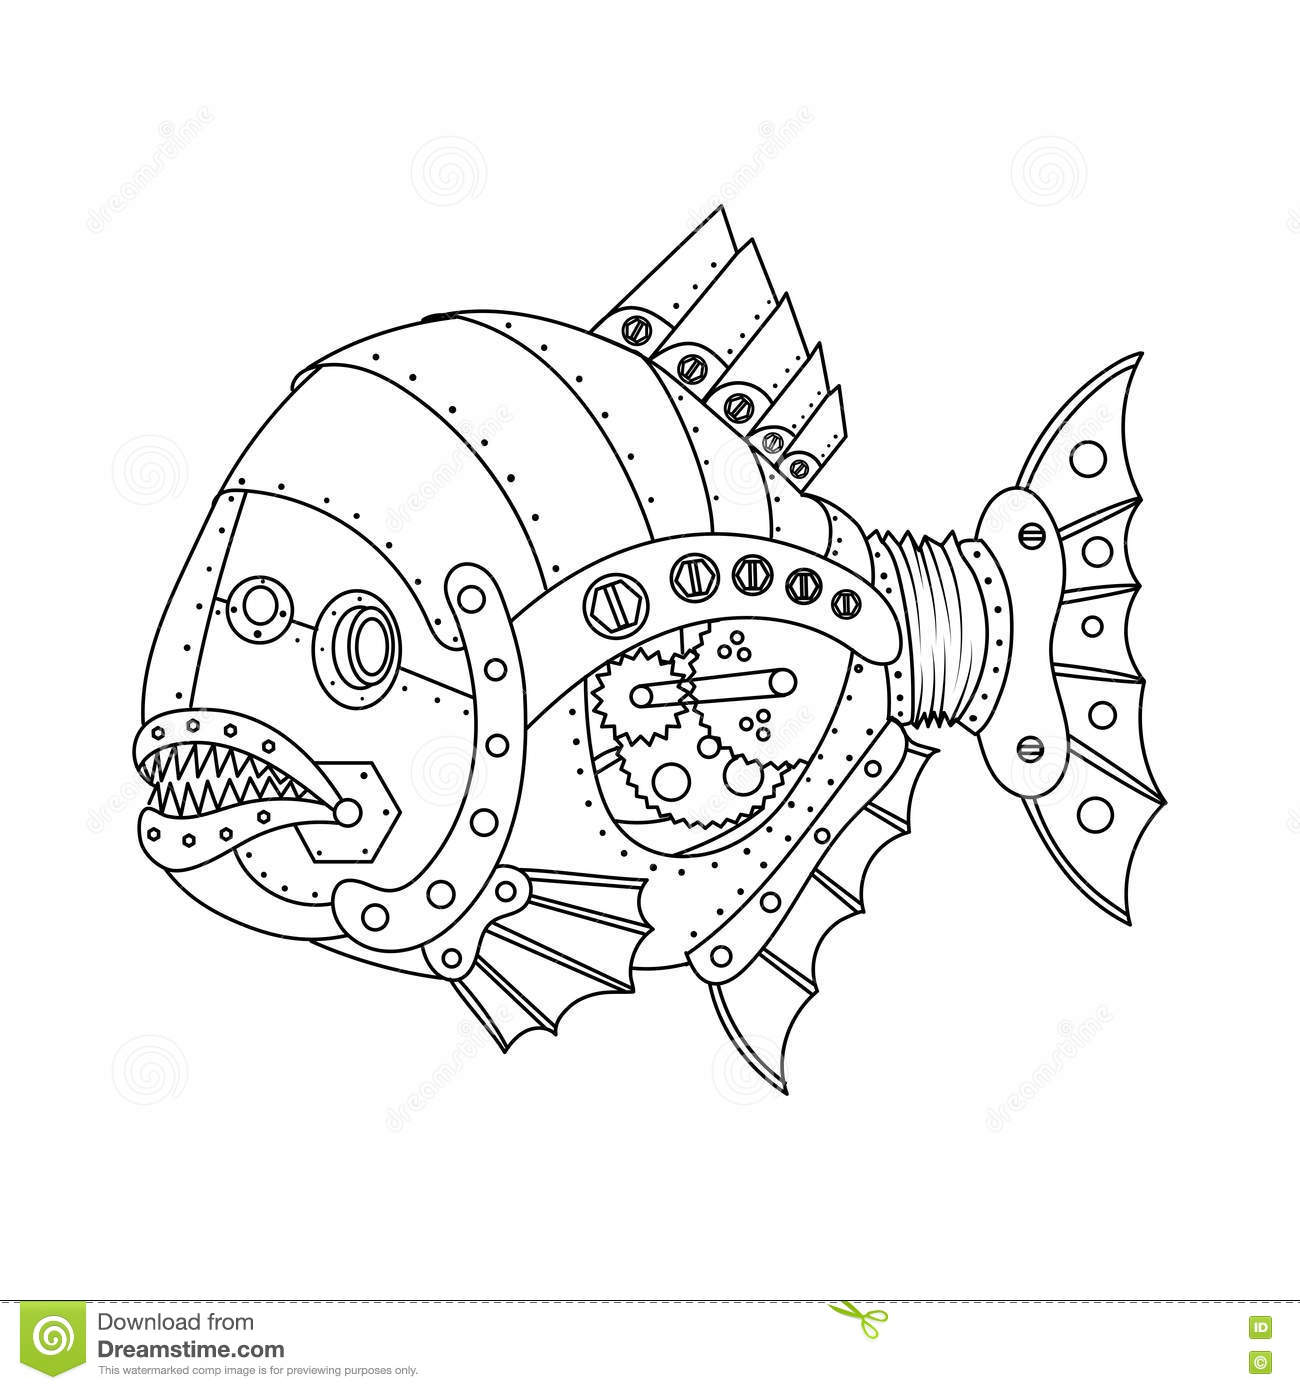 wiring diagram database  steampunk style piranha fish coloring book vector  stock